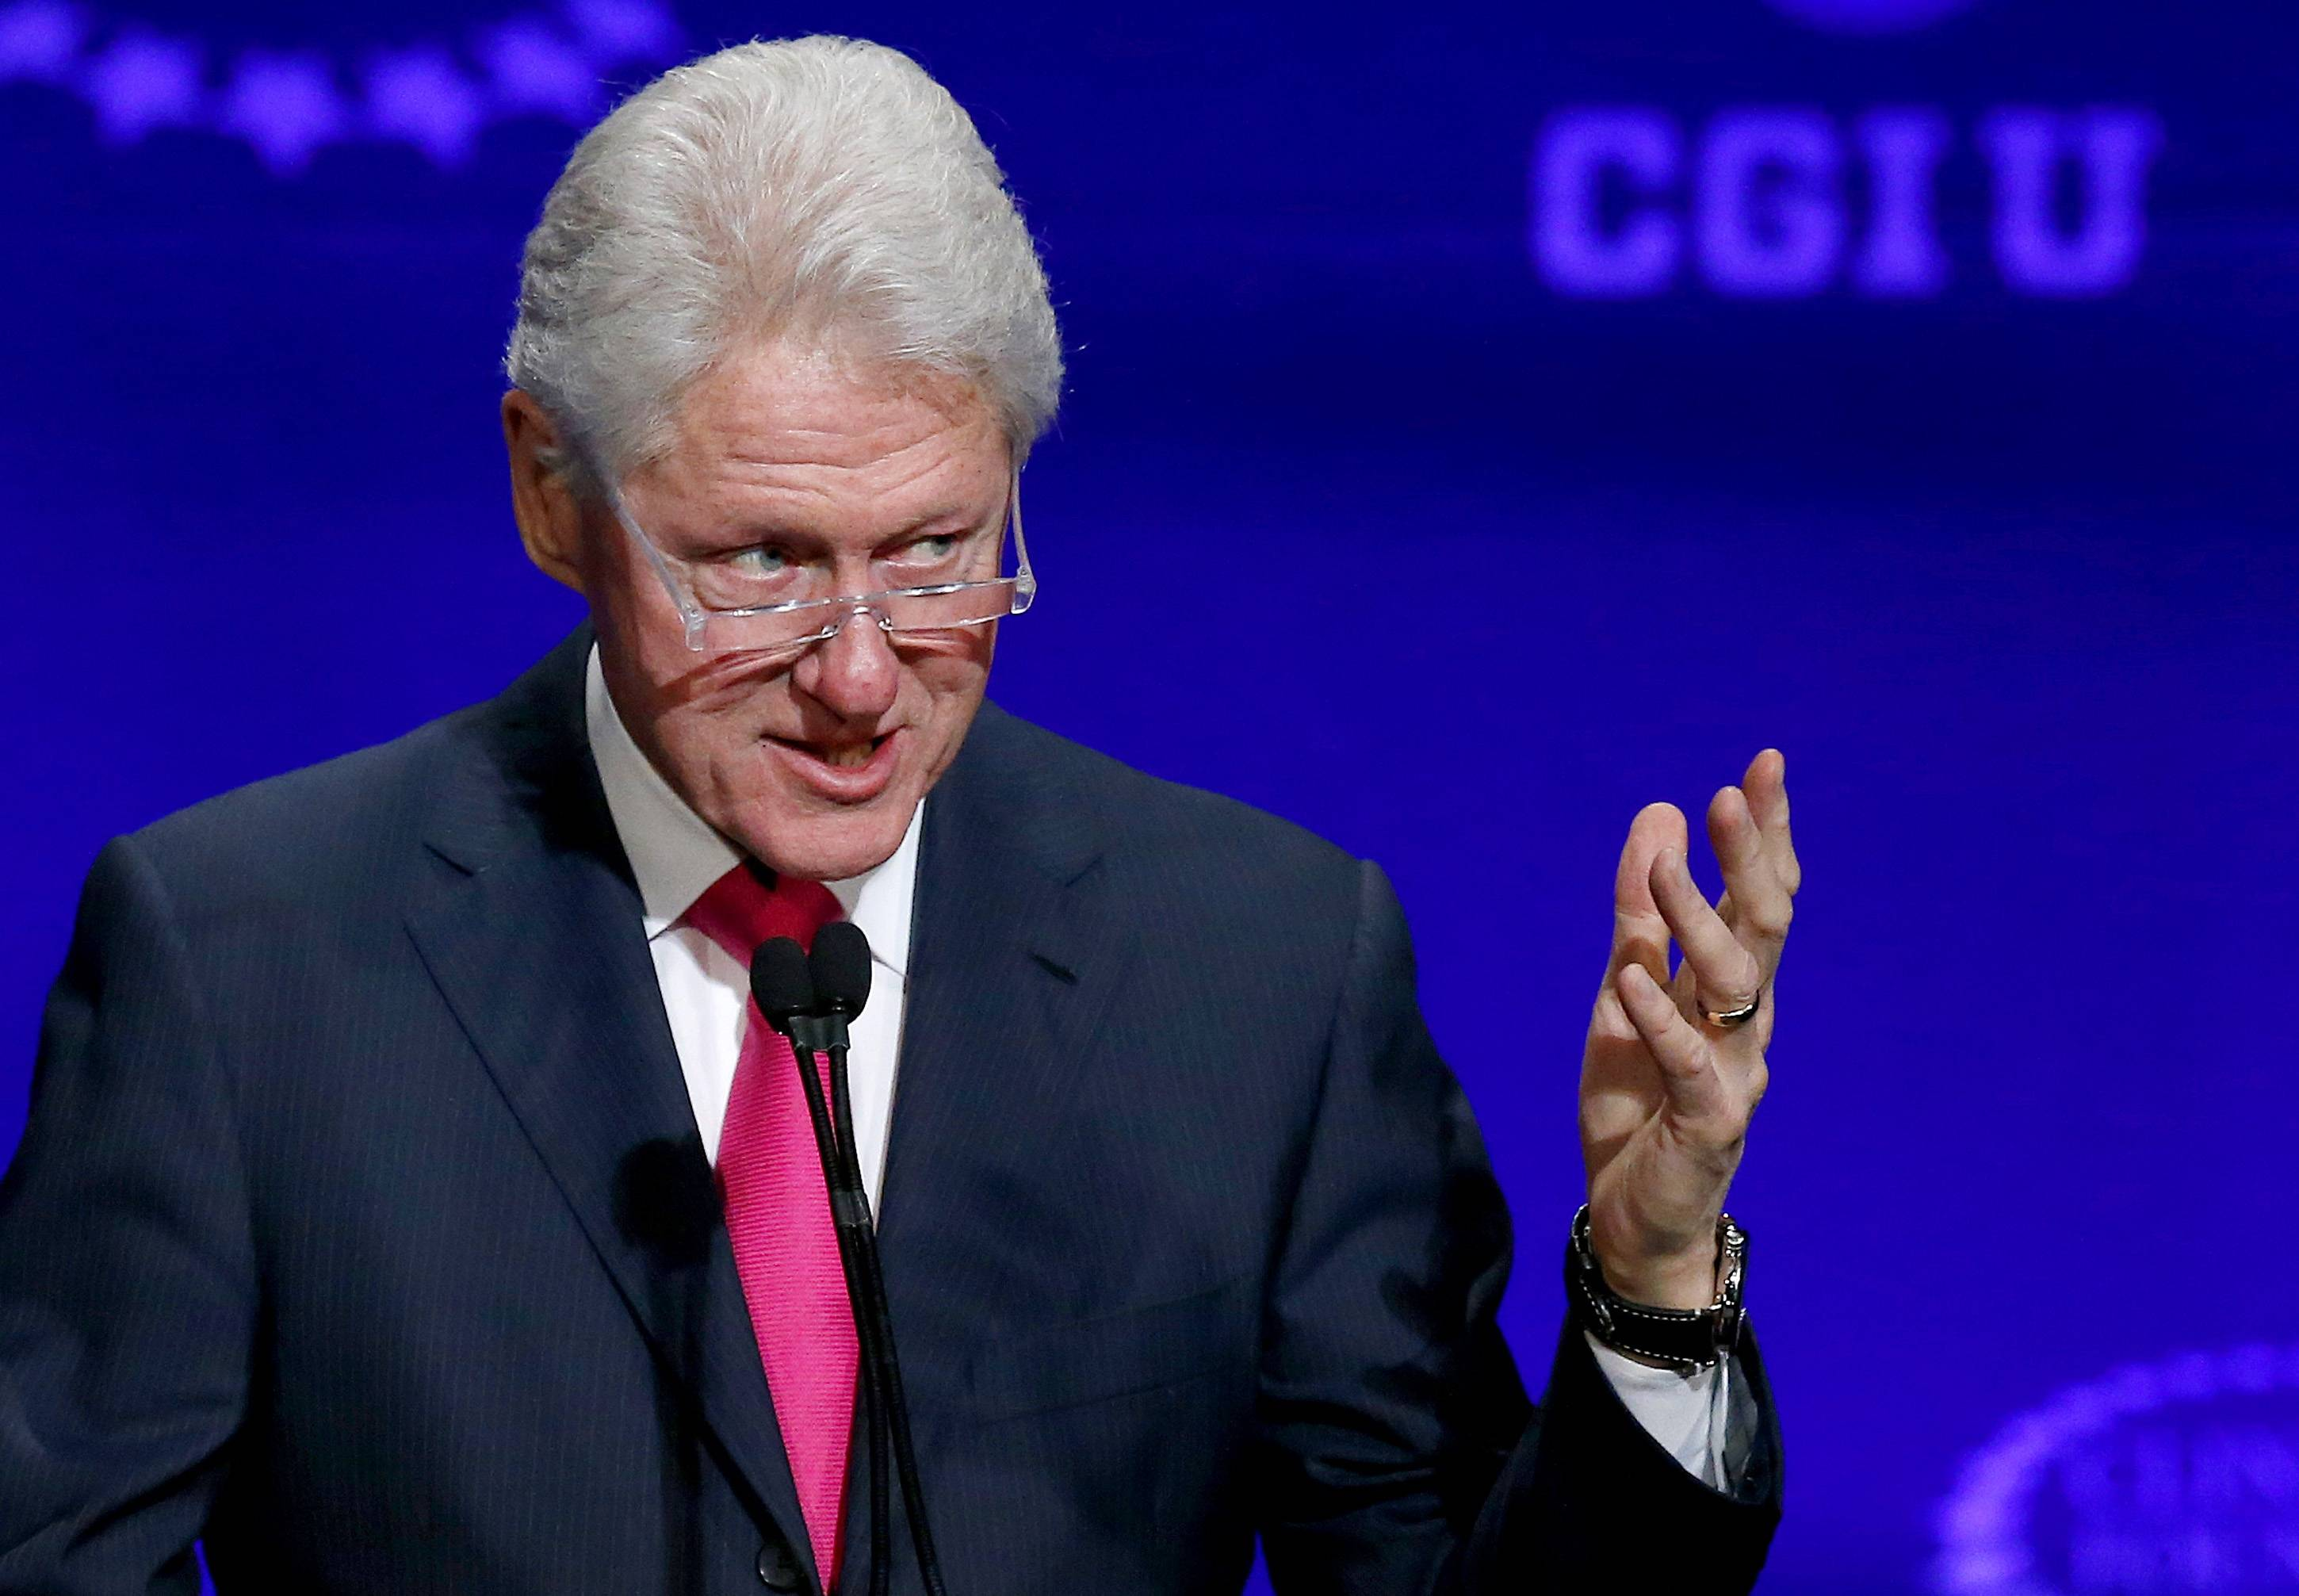 an analysis of bill clinton on freudian perspective Abbott, p (2006) a long and winding road: bill clinton and the 1960s a rhetorical perspective a dilemma-center analysis of clinton's august 17th.